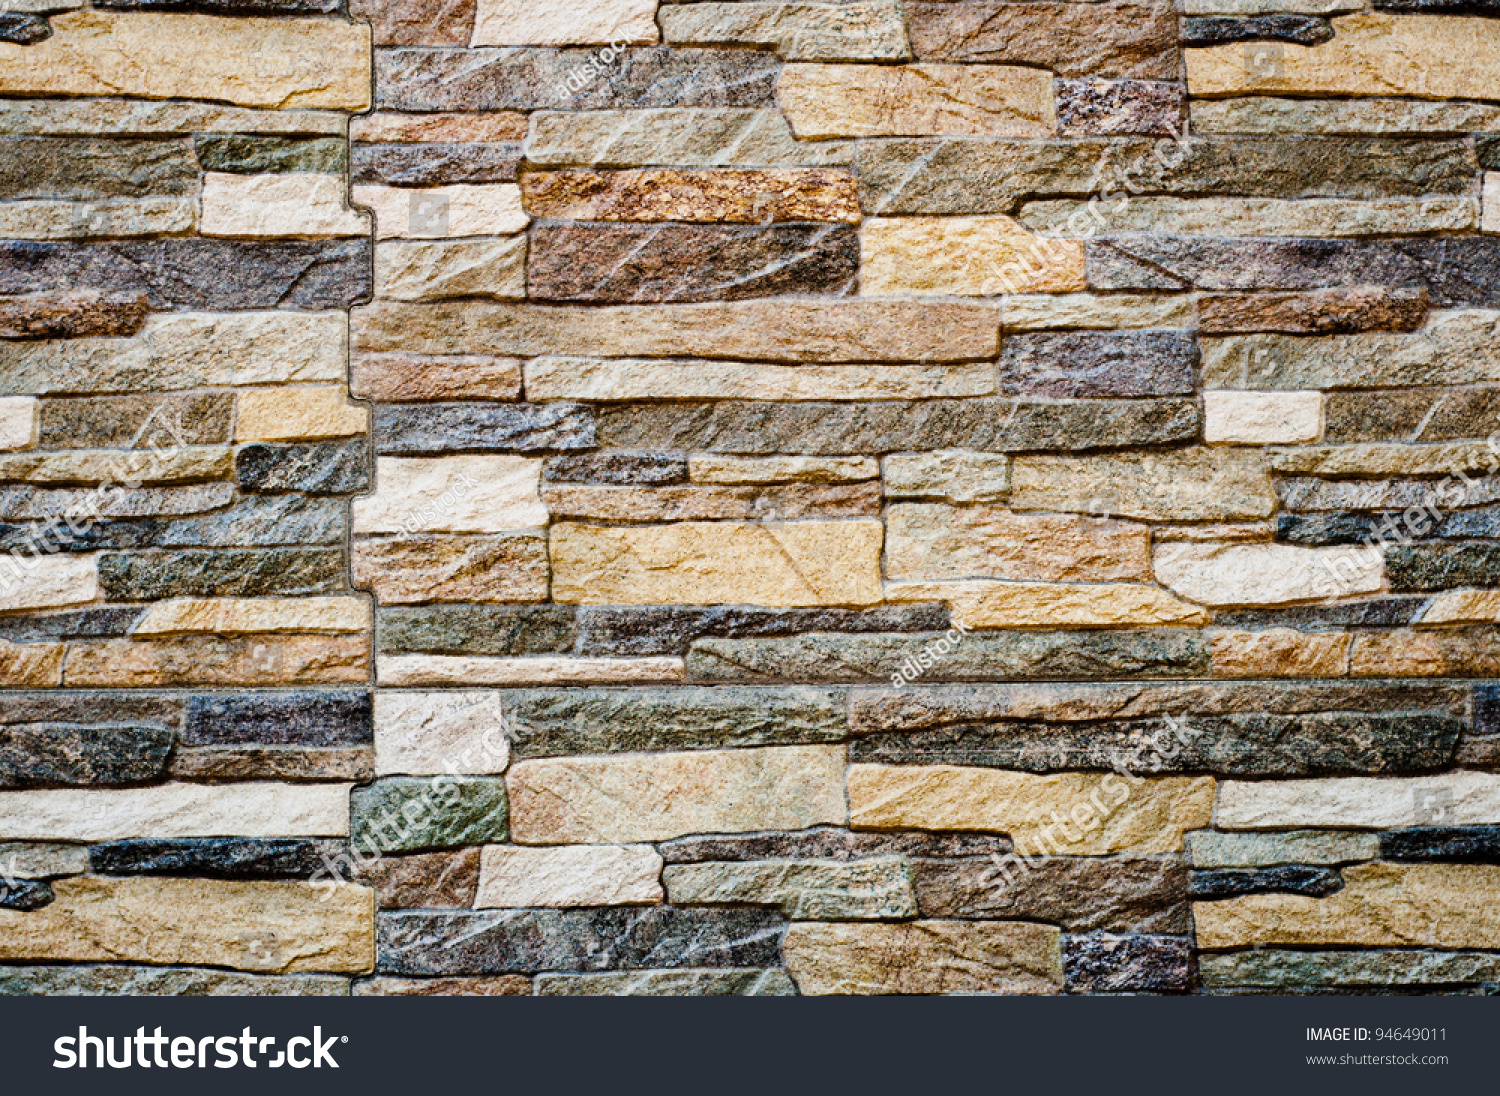 Modern Wall Texture Royaltyfree Modern Stone Wall Background Texture 94649011 Stock